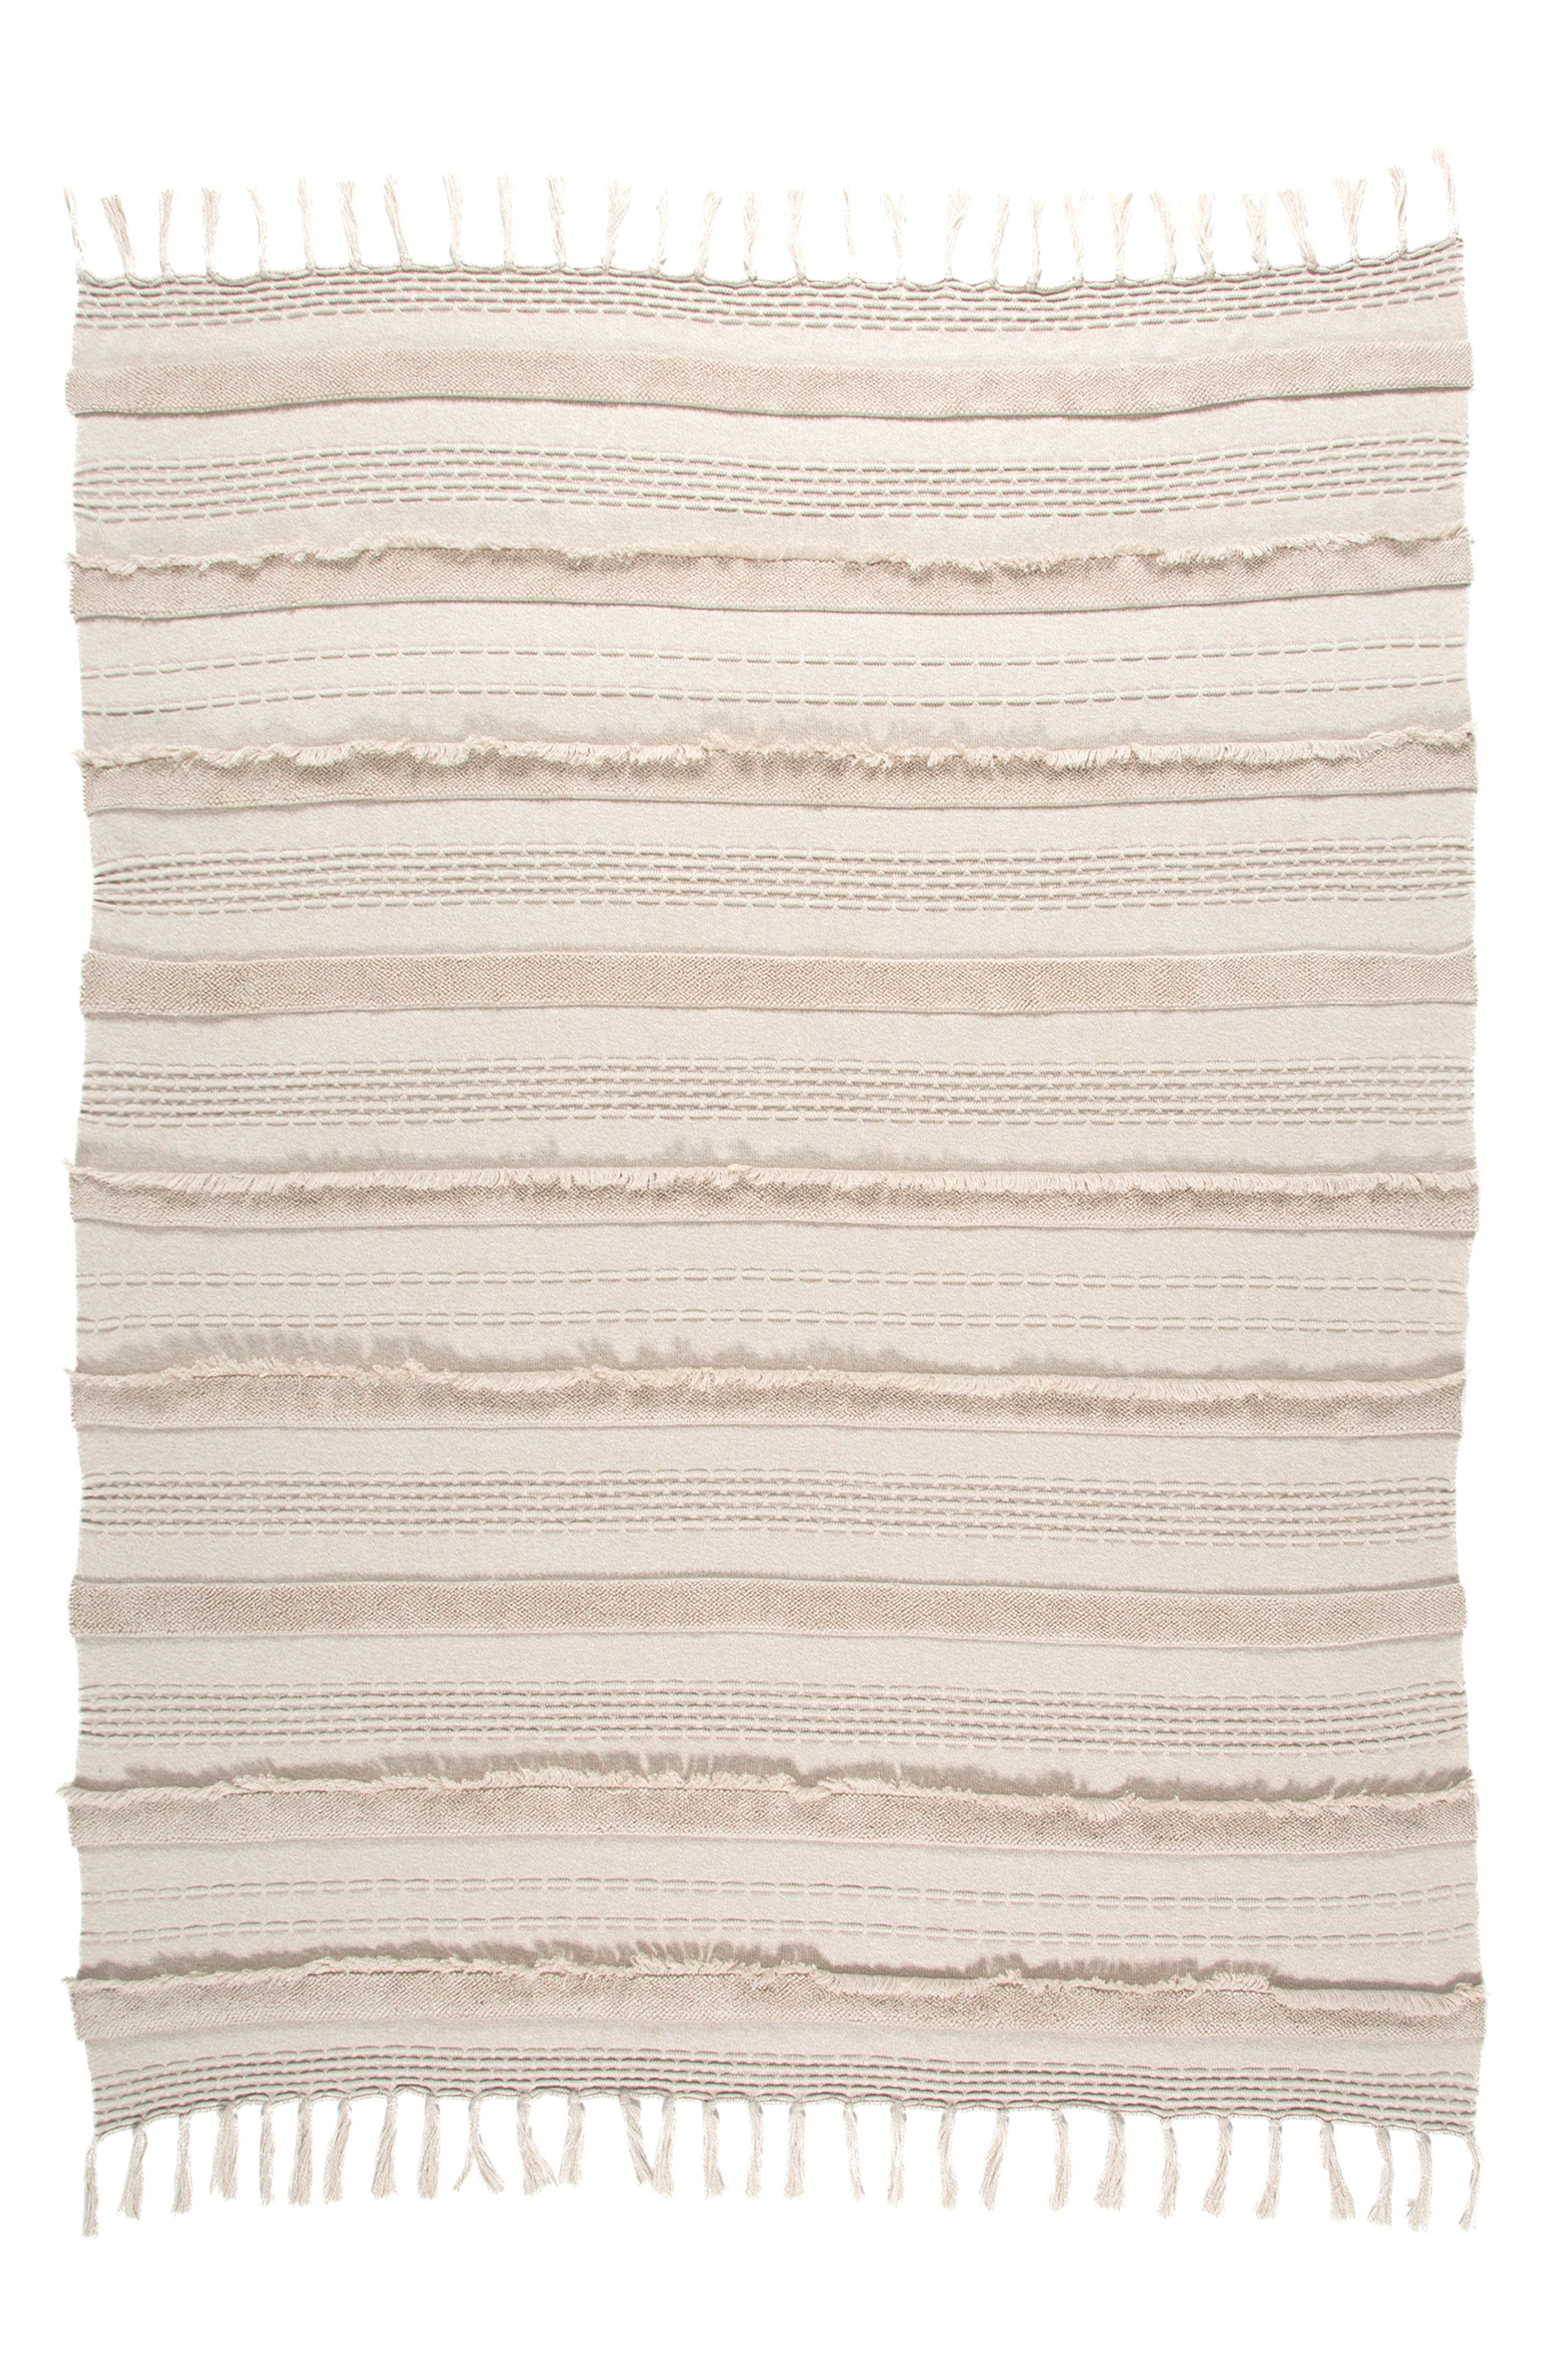 Tassel trim and tonal fringe add plenty of texture to this lightweight cotton blanket that complements any nursery decor. Style Name: Lorena Canals Fringe Knit Blanket. Style Number: 5869429. Available in stores.